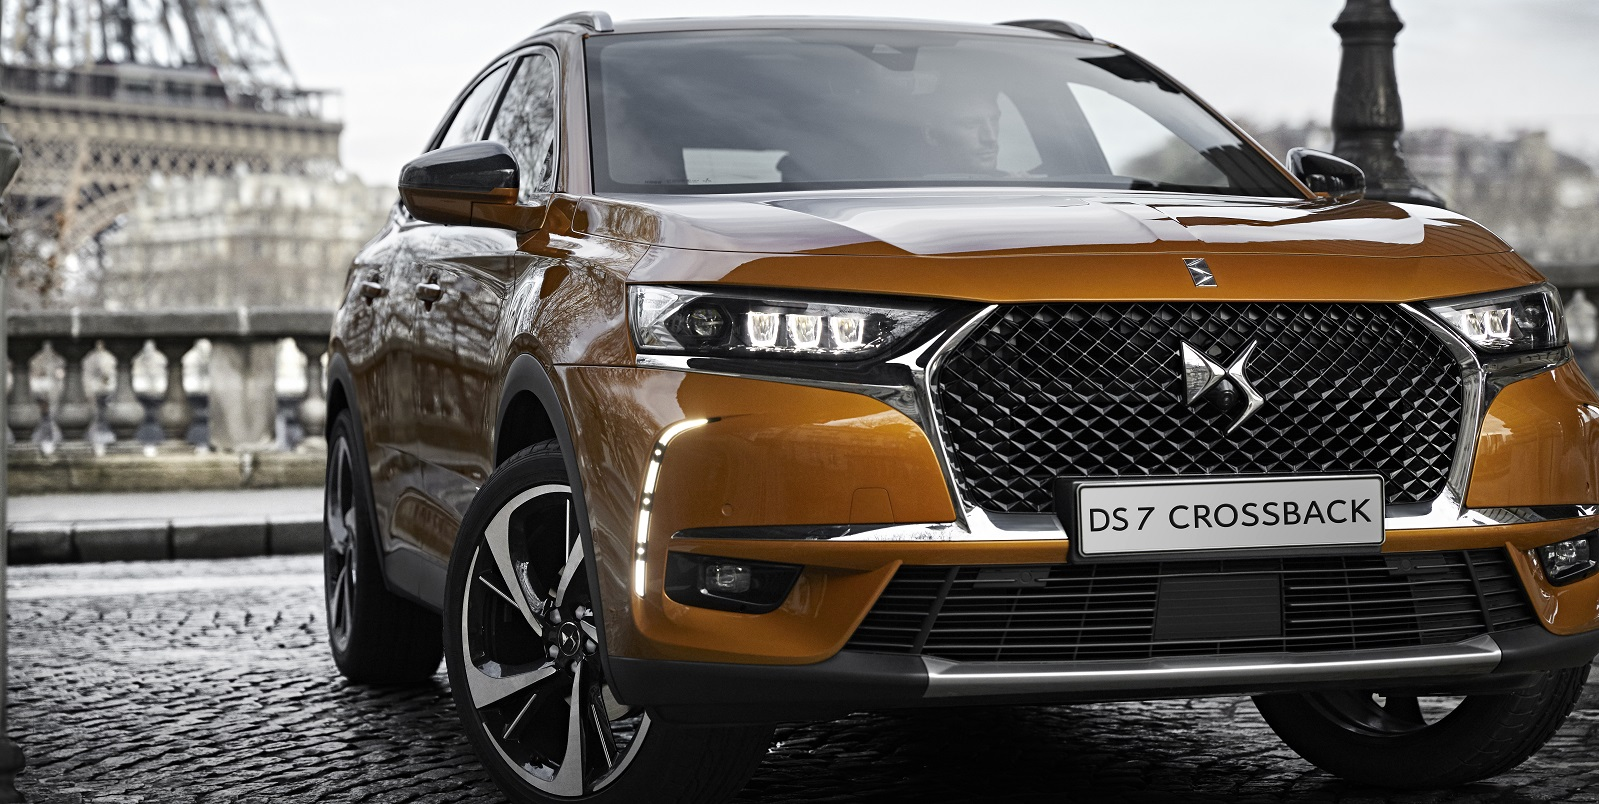 J.C Halliday & Sons Citroen DS7 Crossback